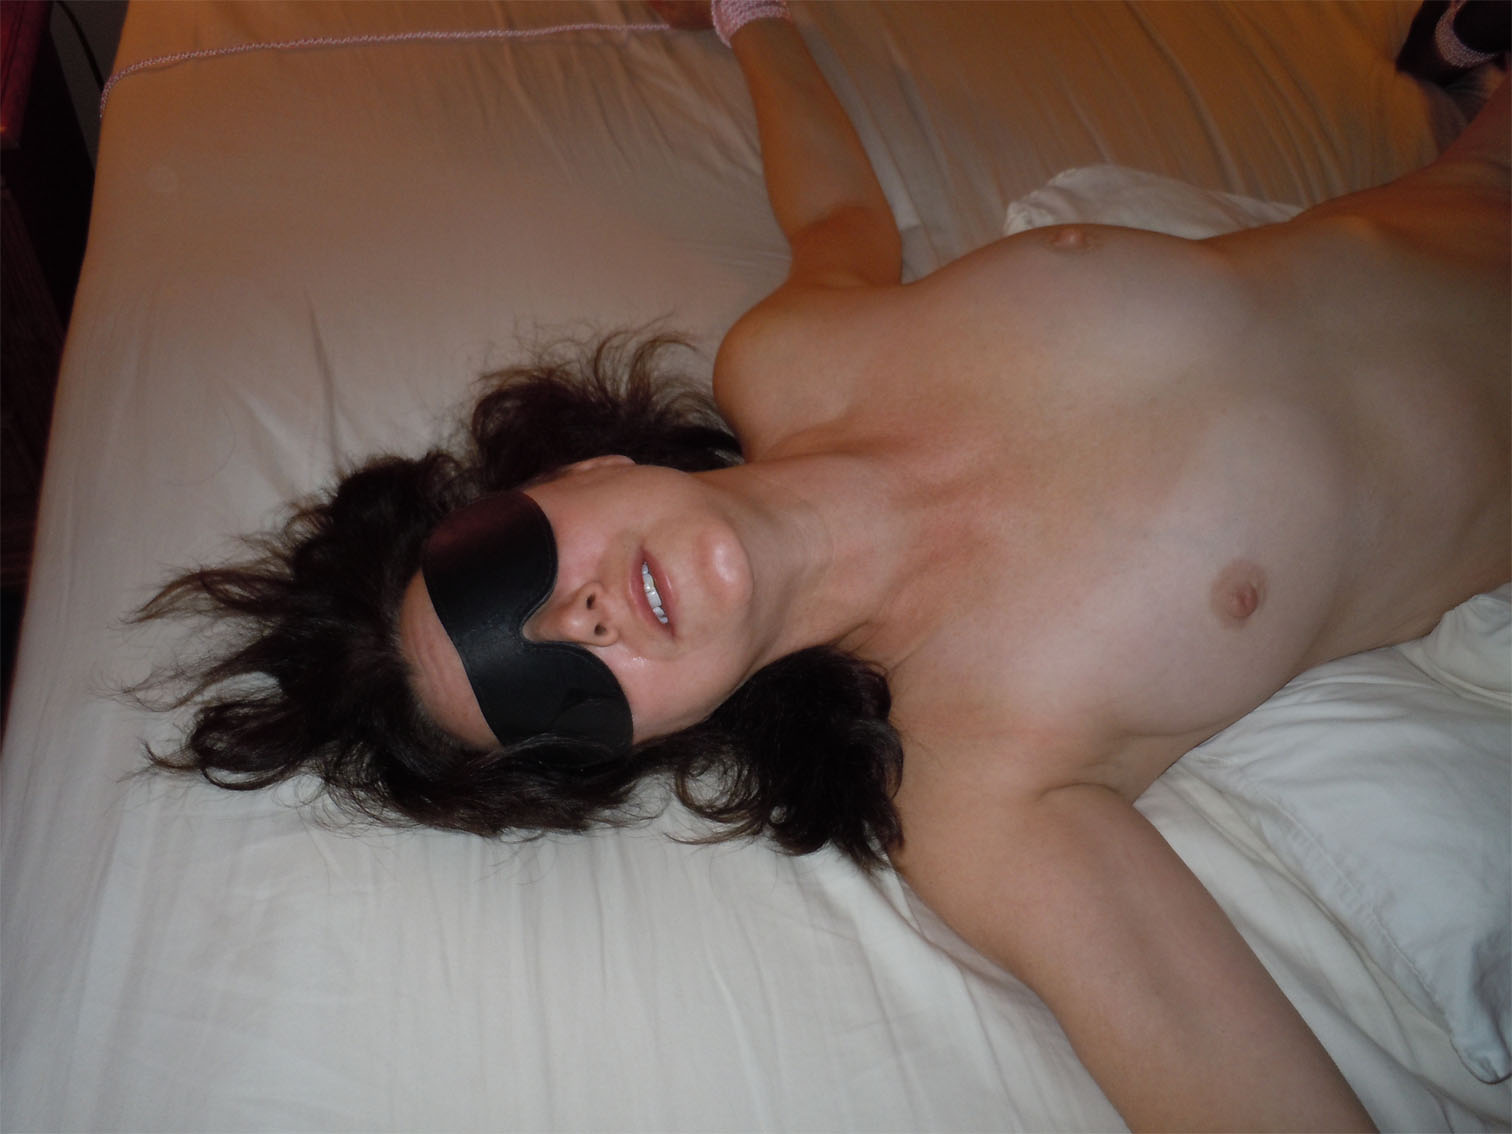 mature wife blindfolded and used for sex in hotel pictures 39: www.mature-amateur-sex.com/4715/mature-wife-blindfolded-and-used...